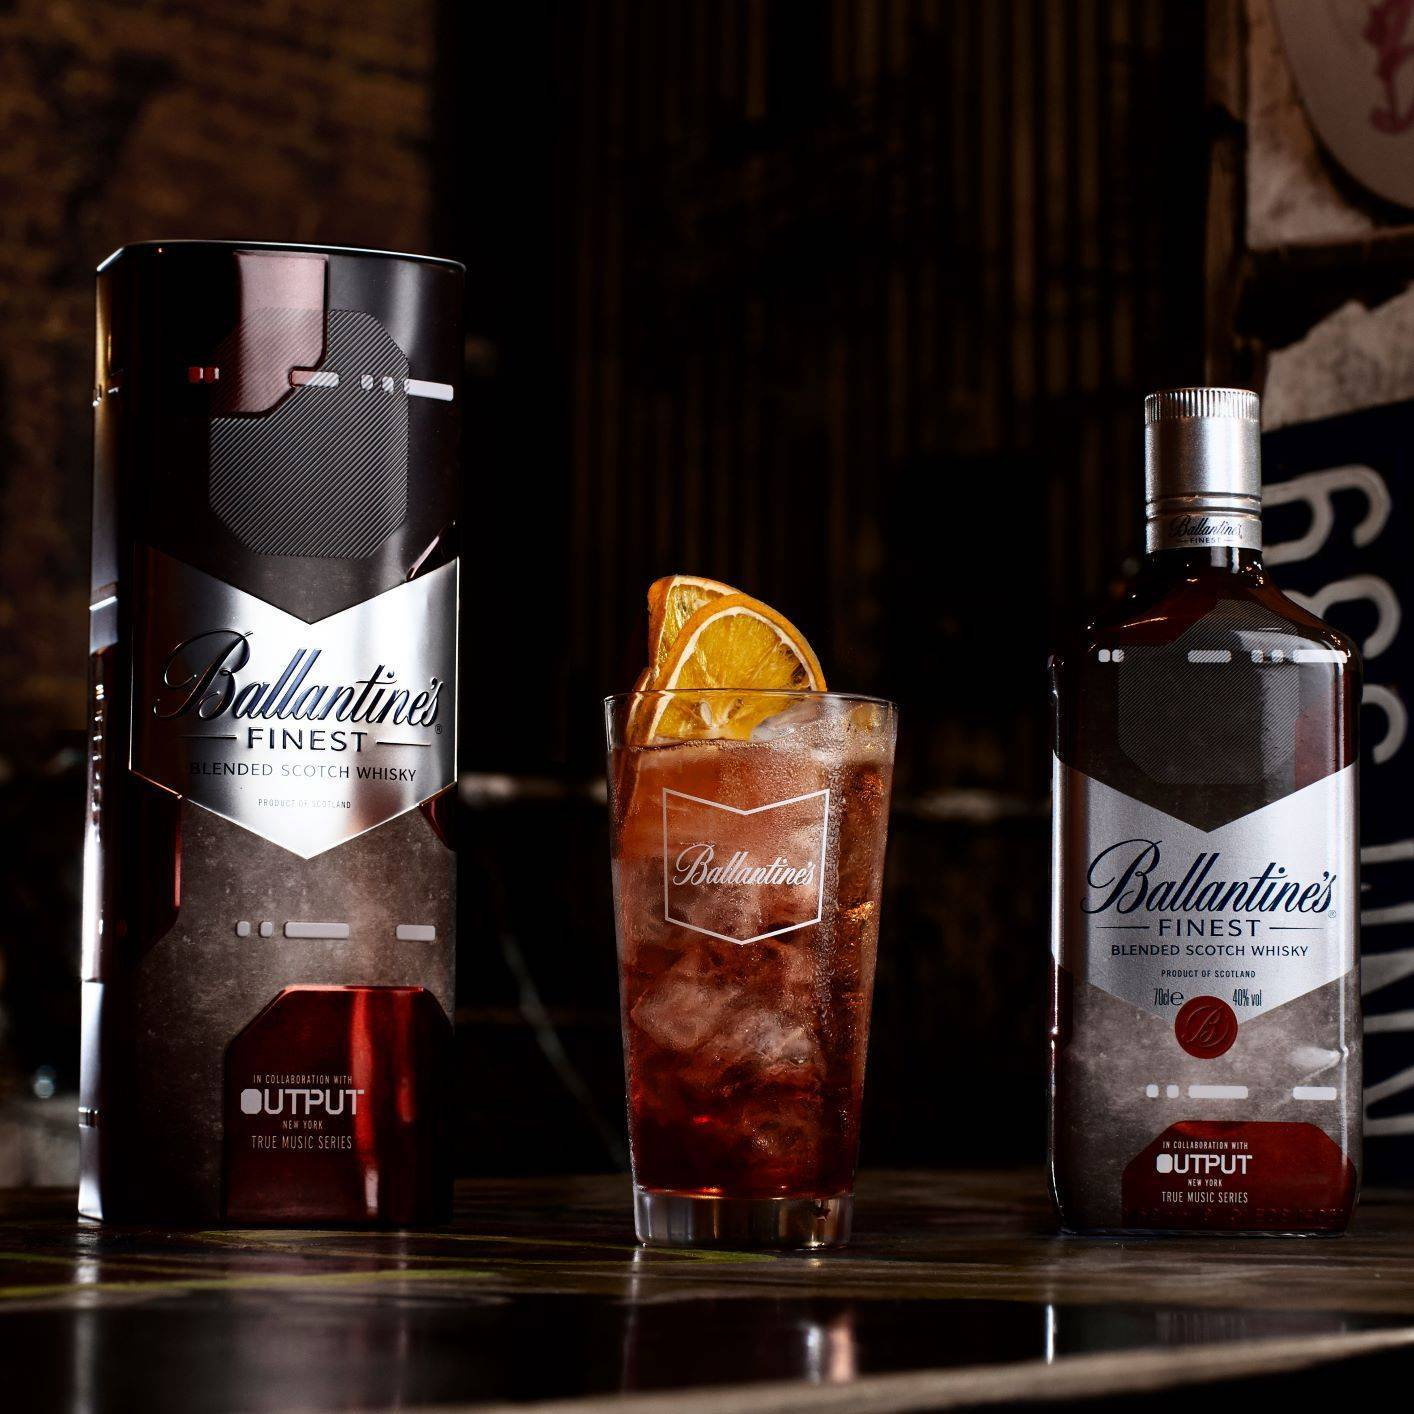 Ballantine's The Clubs collection series limited edition bottle with drink